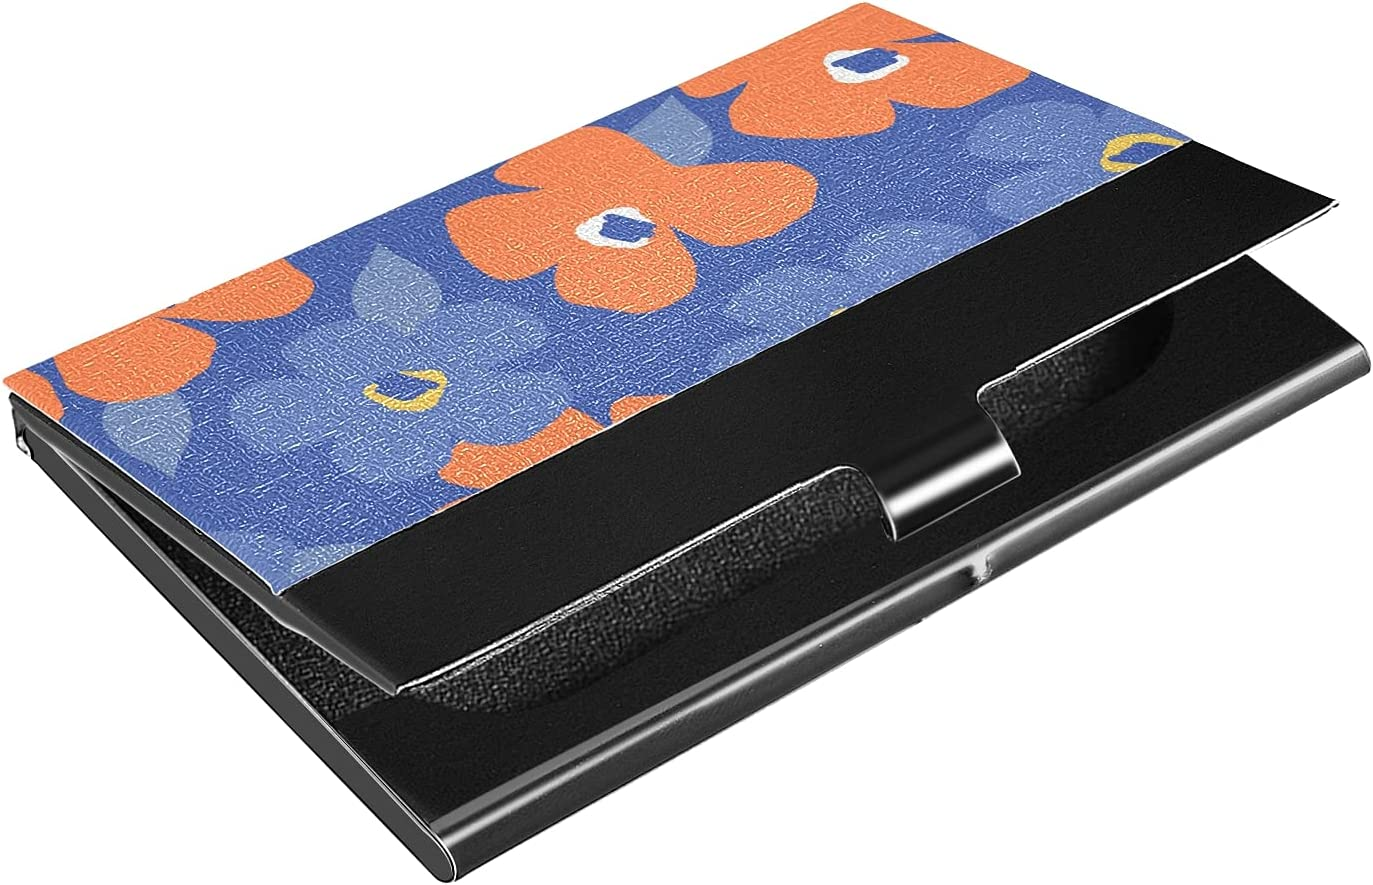 OTVEE Colorful Flower Business Card Holder Wallet Stainless Steel & Leather Pocket Business Card Case Organizer Slim Name Card ID Card Holders Credit Card Wallet Carrier Purse for Women Men